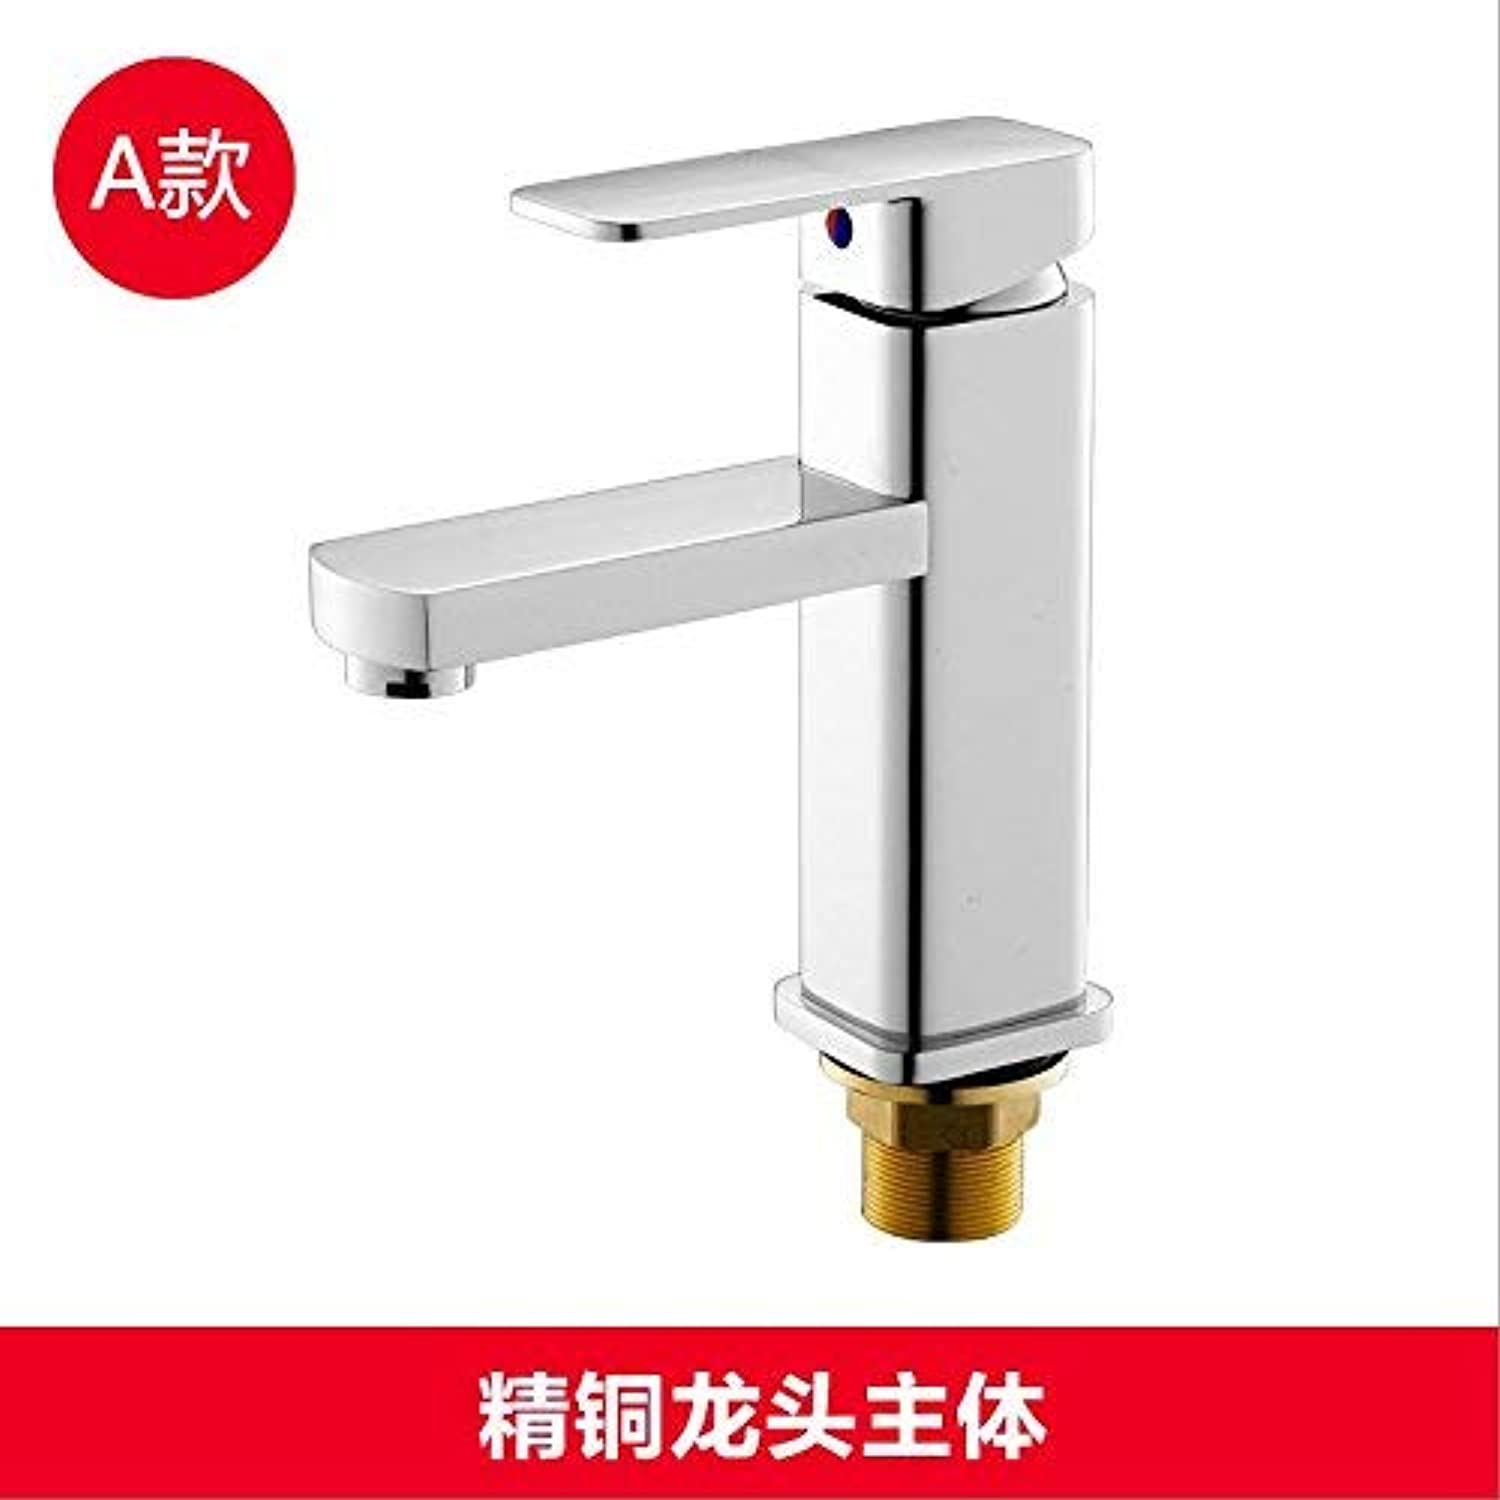 Oudan The health of the whole copper basin surface basin faucet hot and cold wash basins bathroom cabinets wash basins single handle single hole in the brass fittings with hose (color   1)